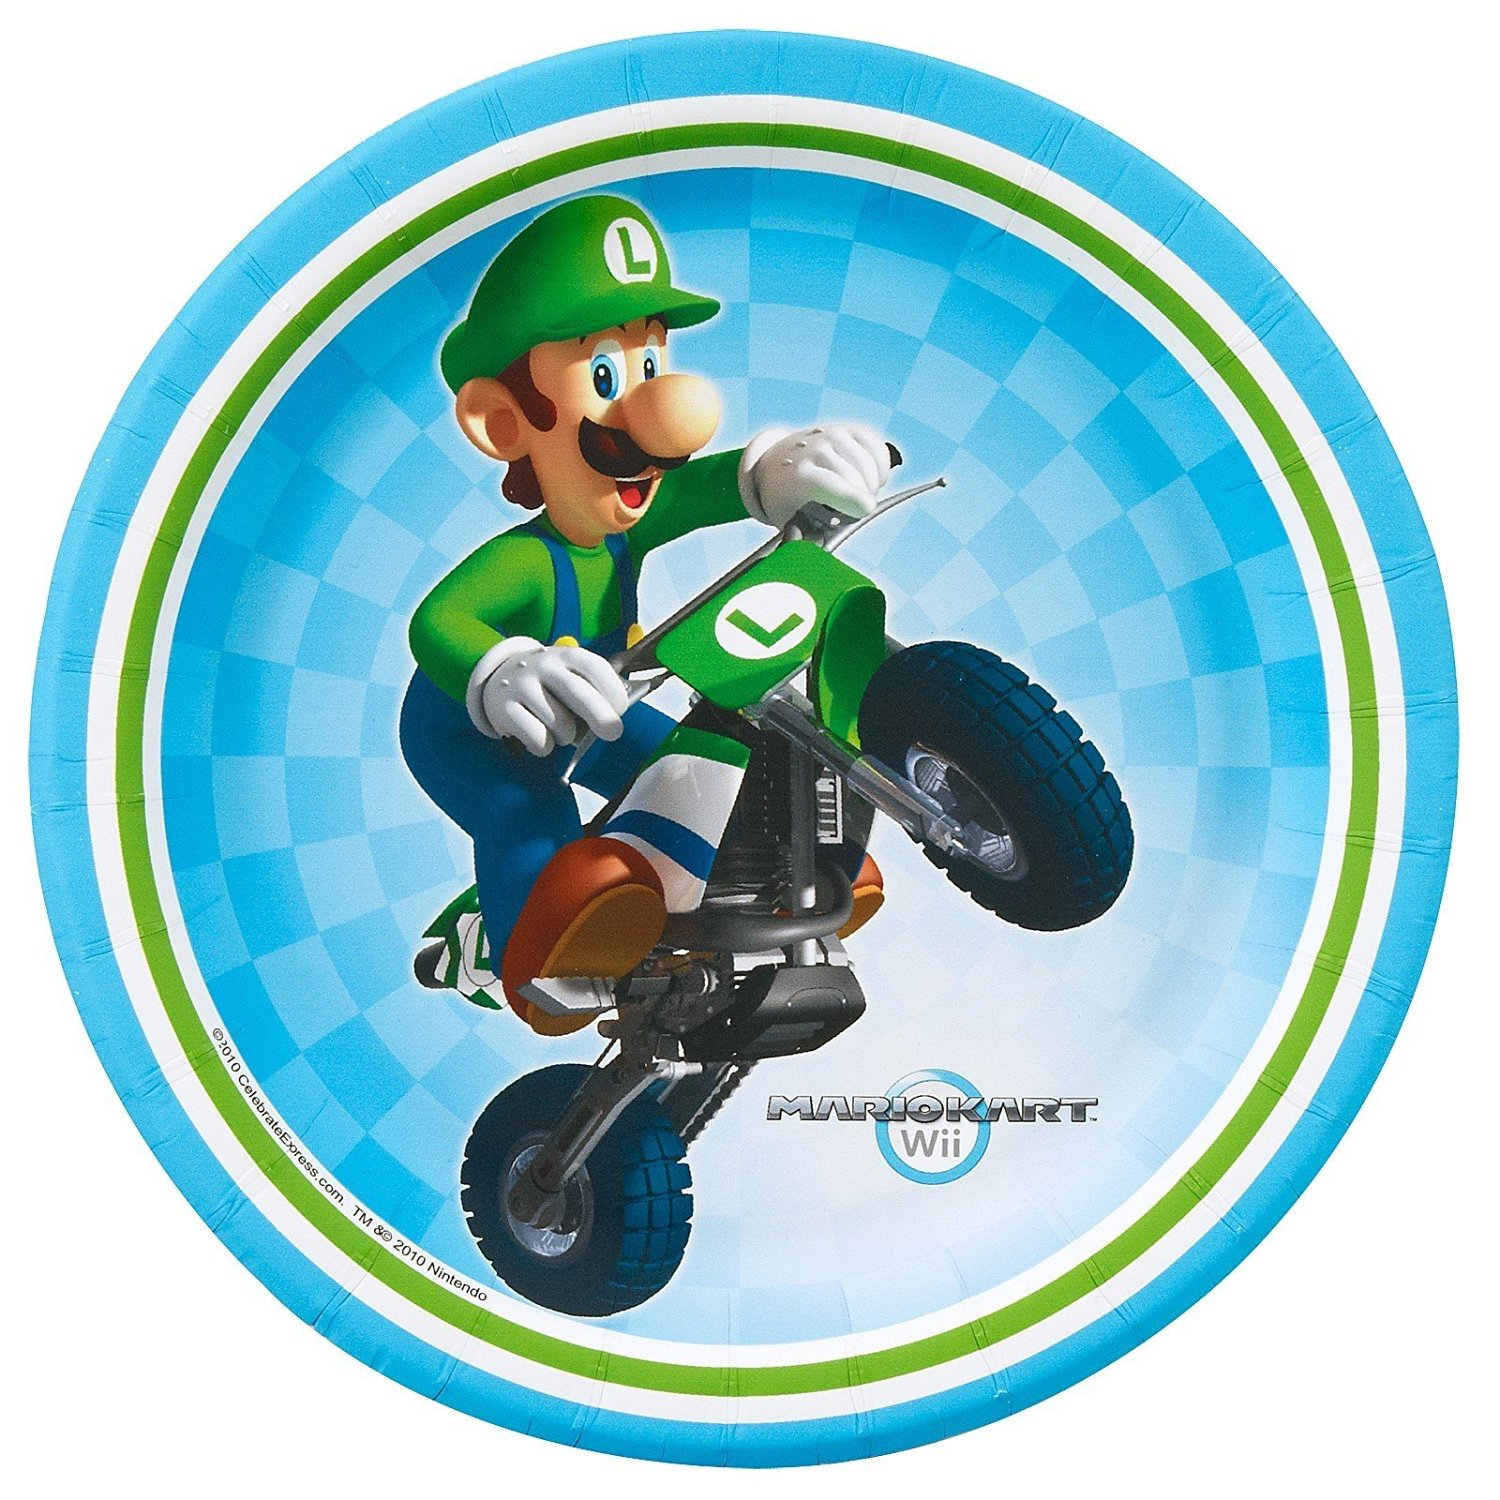 Super Mario Brothers 'Mario Kart Wii' Small Paper Plates (8ct)